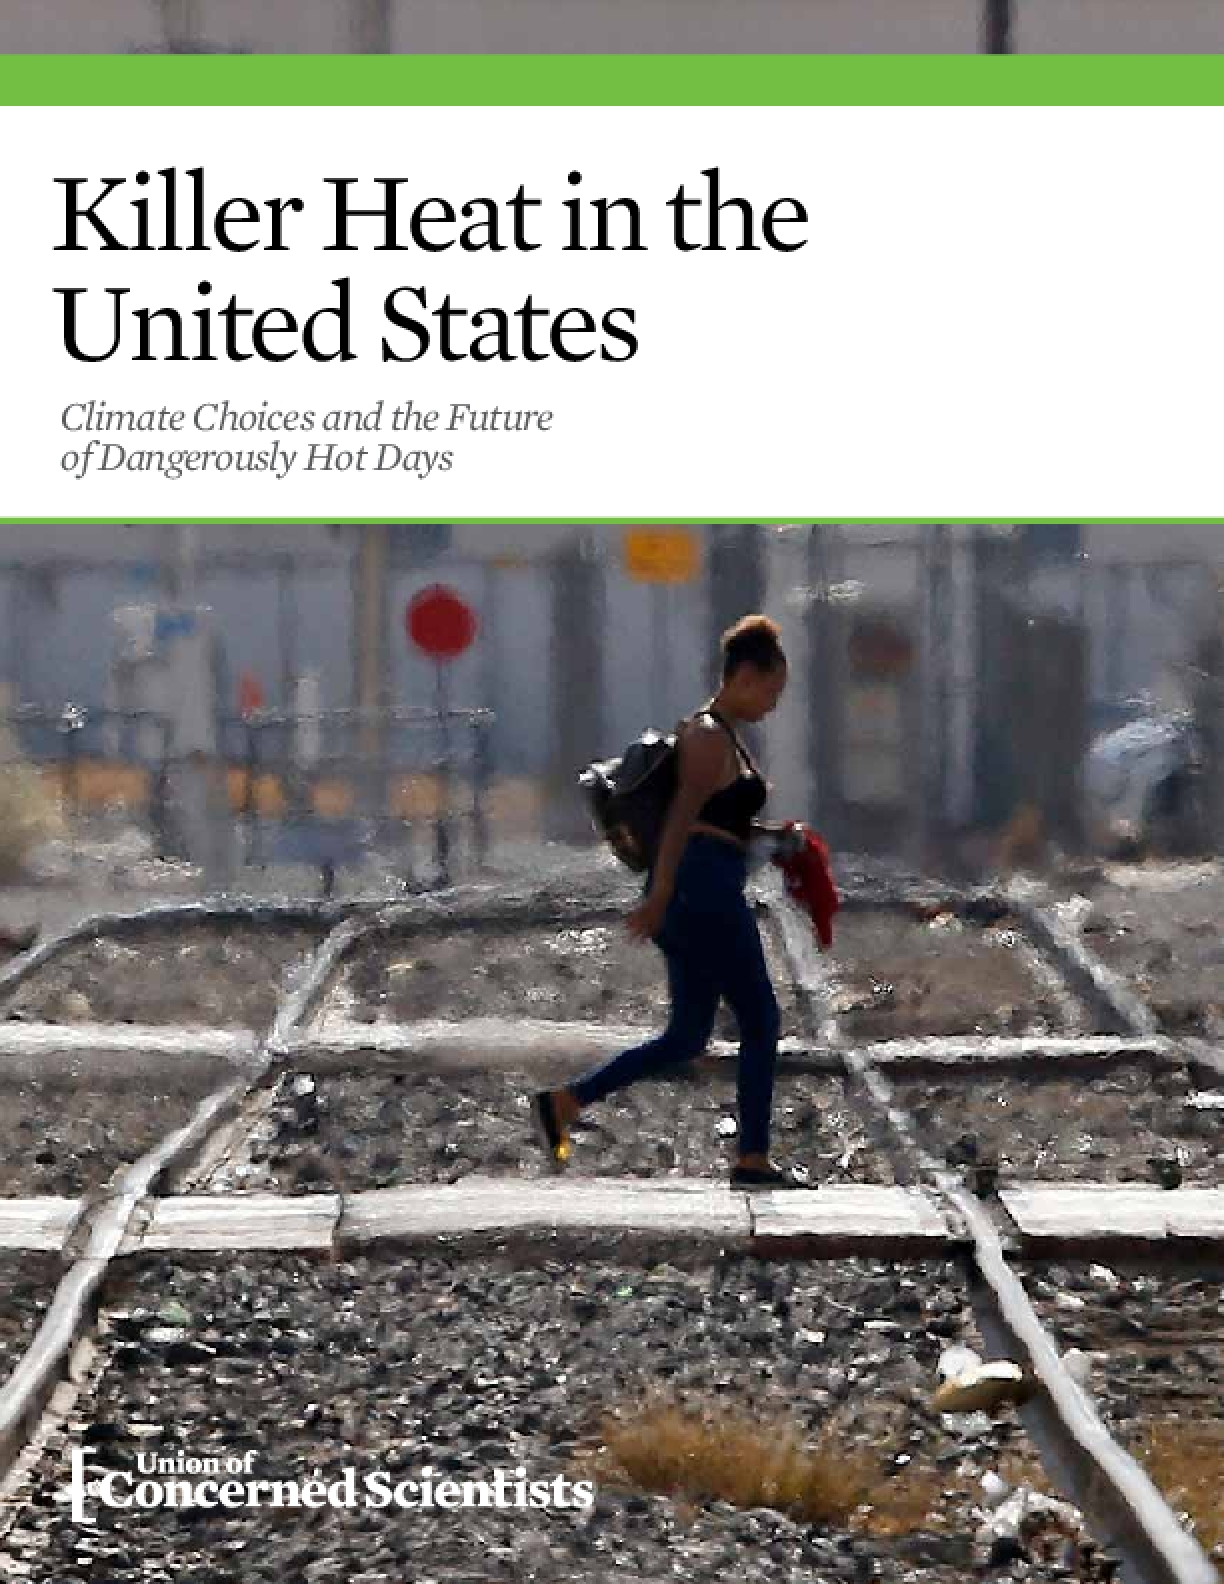 Killer Heat in the United States: Climate Choices and the Future of Dangerously Hot Days